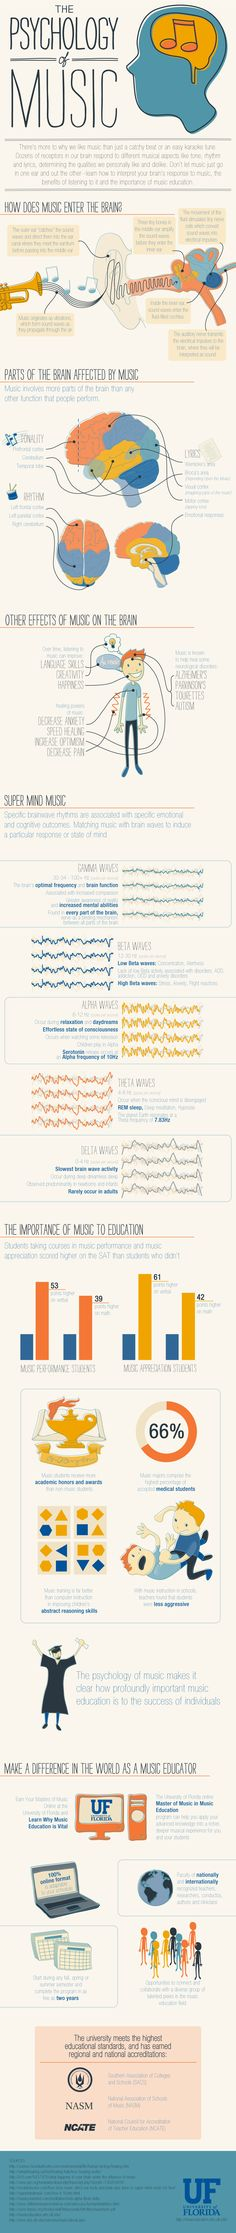 The Psychology Of Music [Pic]  ~  Would Music Therapy help a person with Brain Bleed / Damage / Injury ??